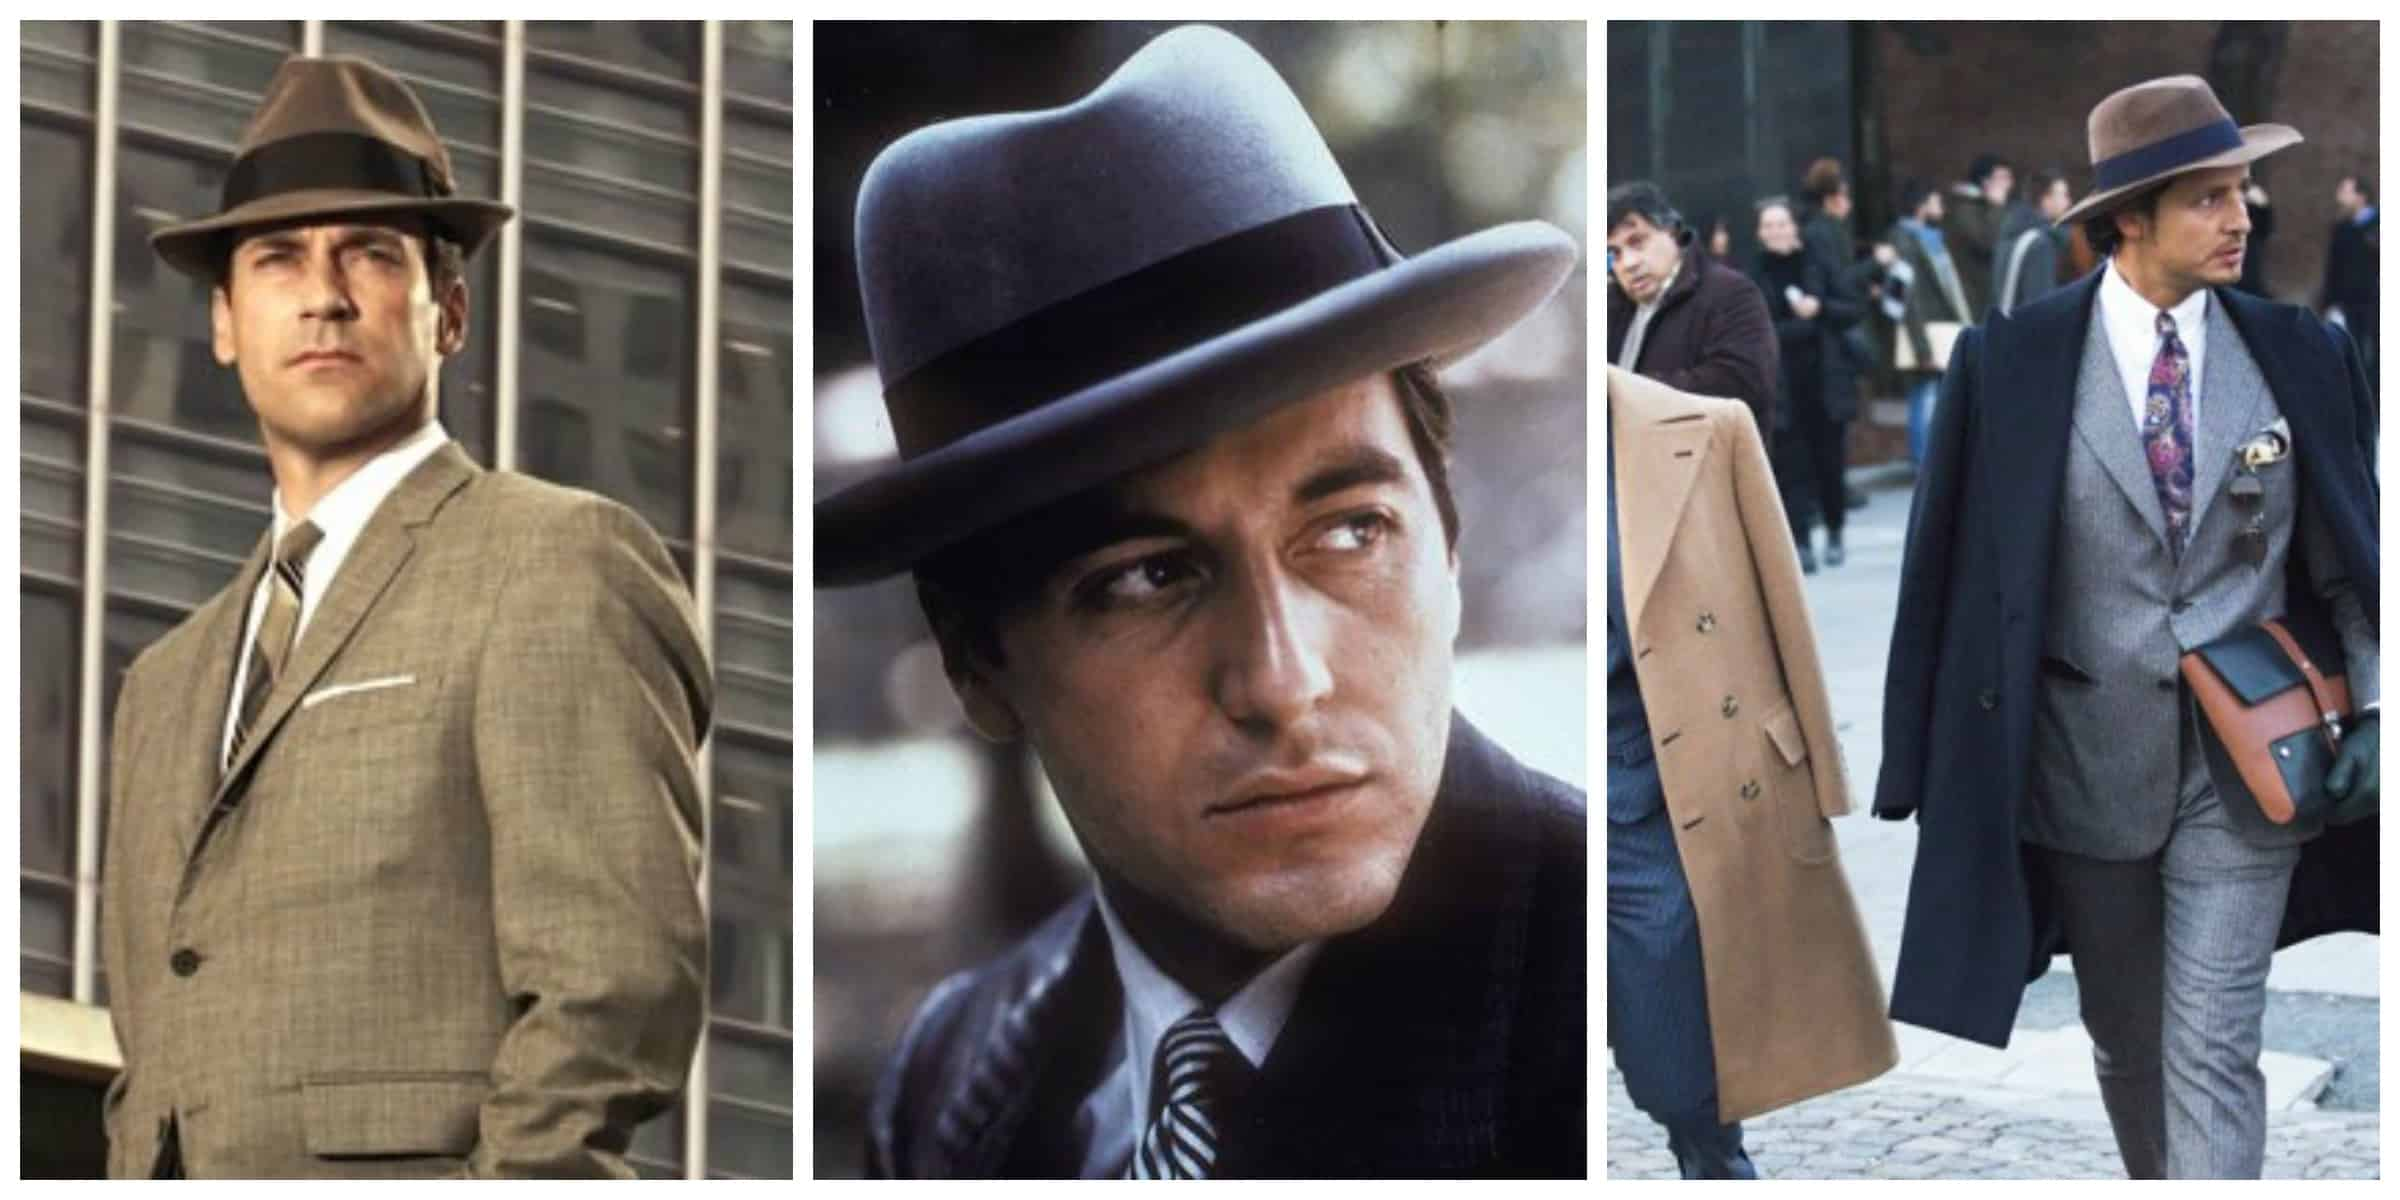 men-fedora-hats-retro-looks